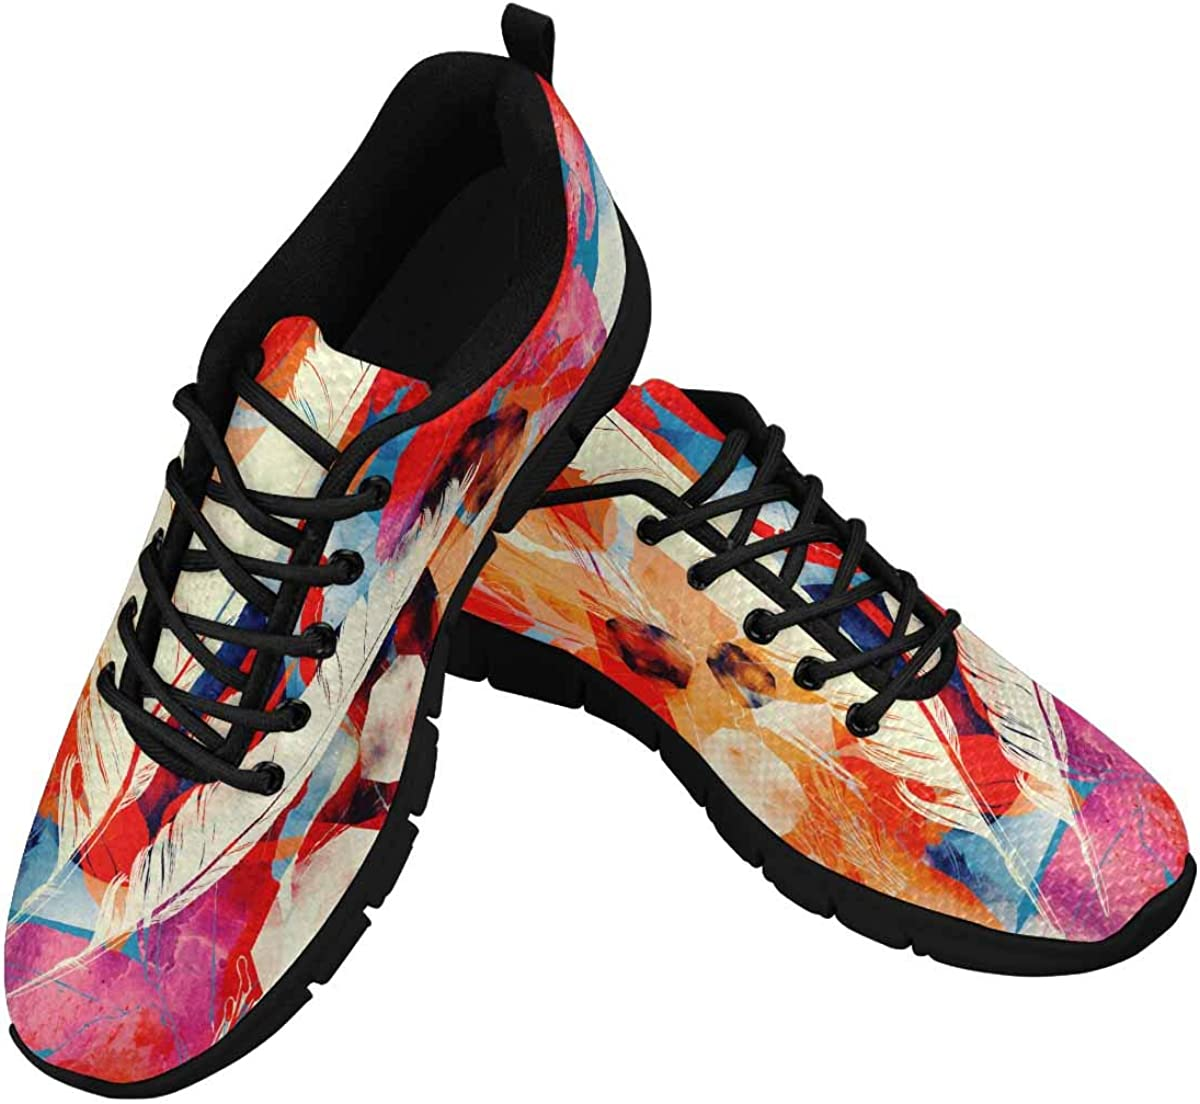 INTERESTPRINT Moon, Feathers, Flowers and Jewels Women's Running Shoes Mesh Breathable Sports Casual Shoes